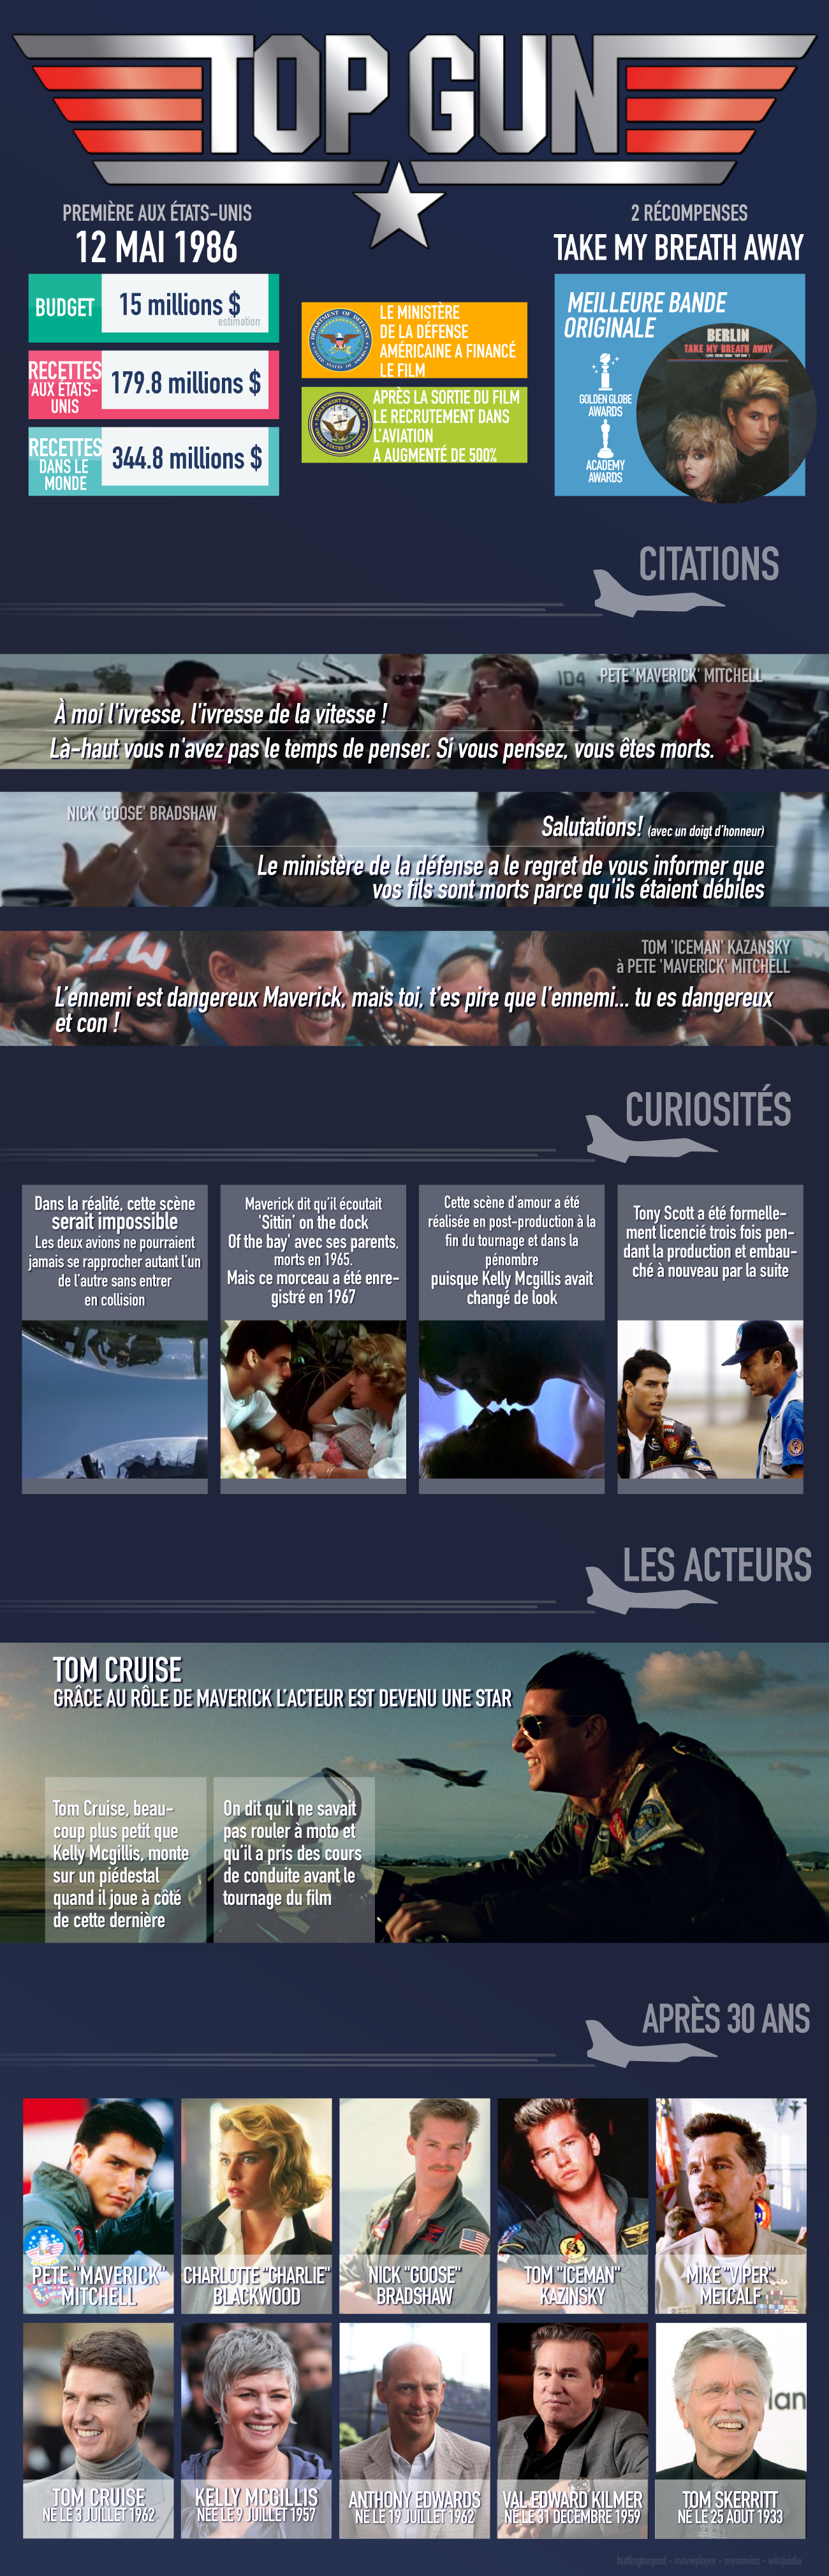 TOP GUN - Infographie TOP GUN anniversaire 30 ans Birthday Tom Cruise 1986 2016 - Go with the Blog